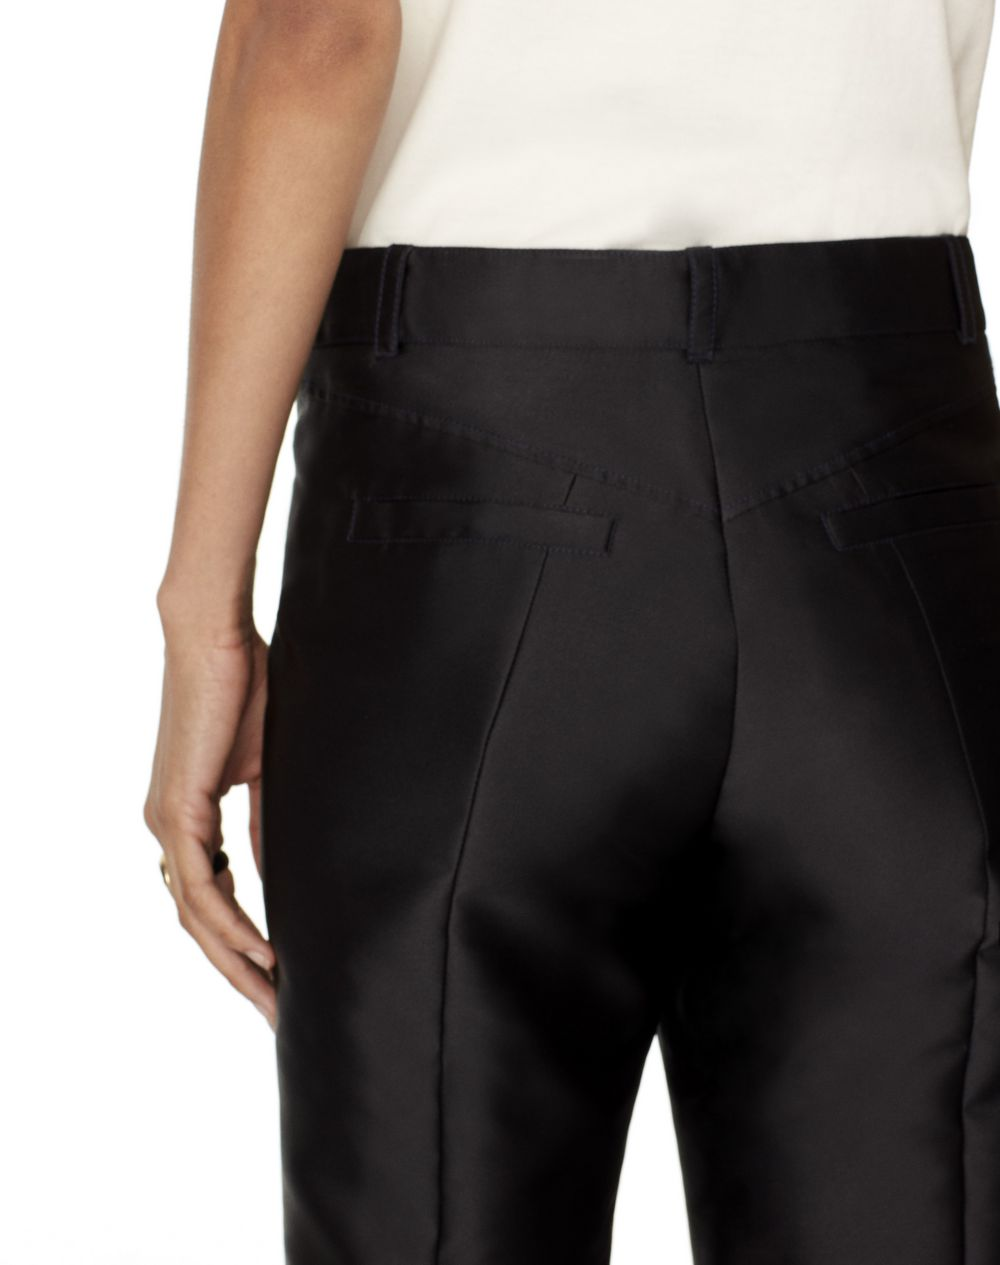 SATIN-EFFECT 7/8 TAILORED PANTS - Lanvin